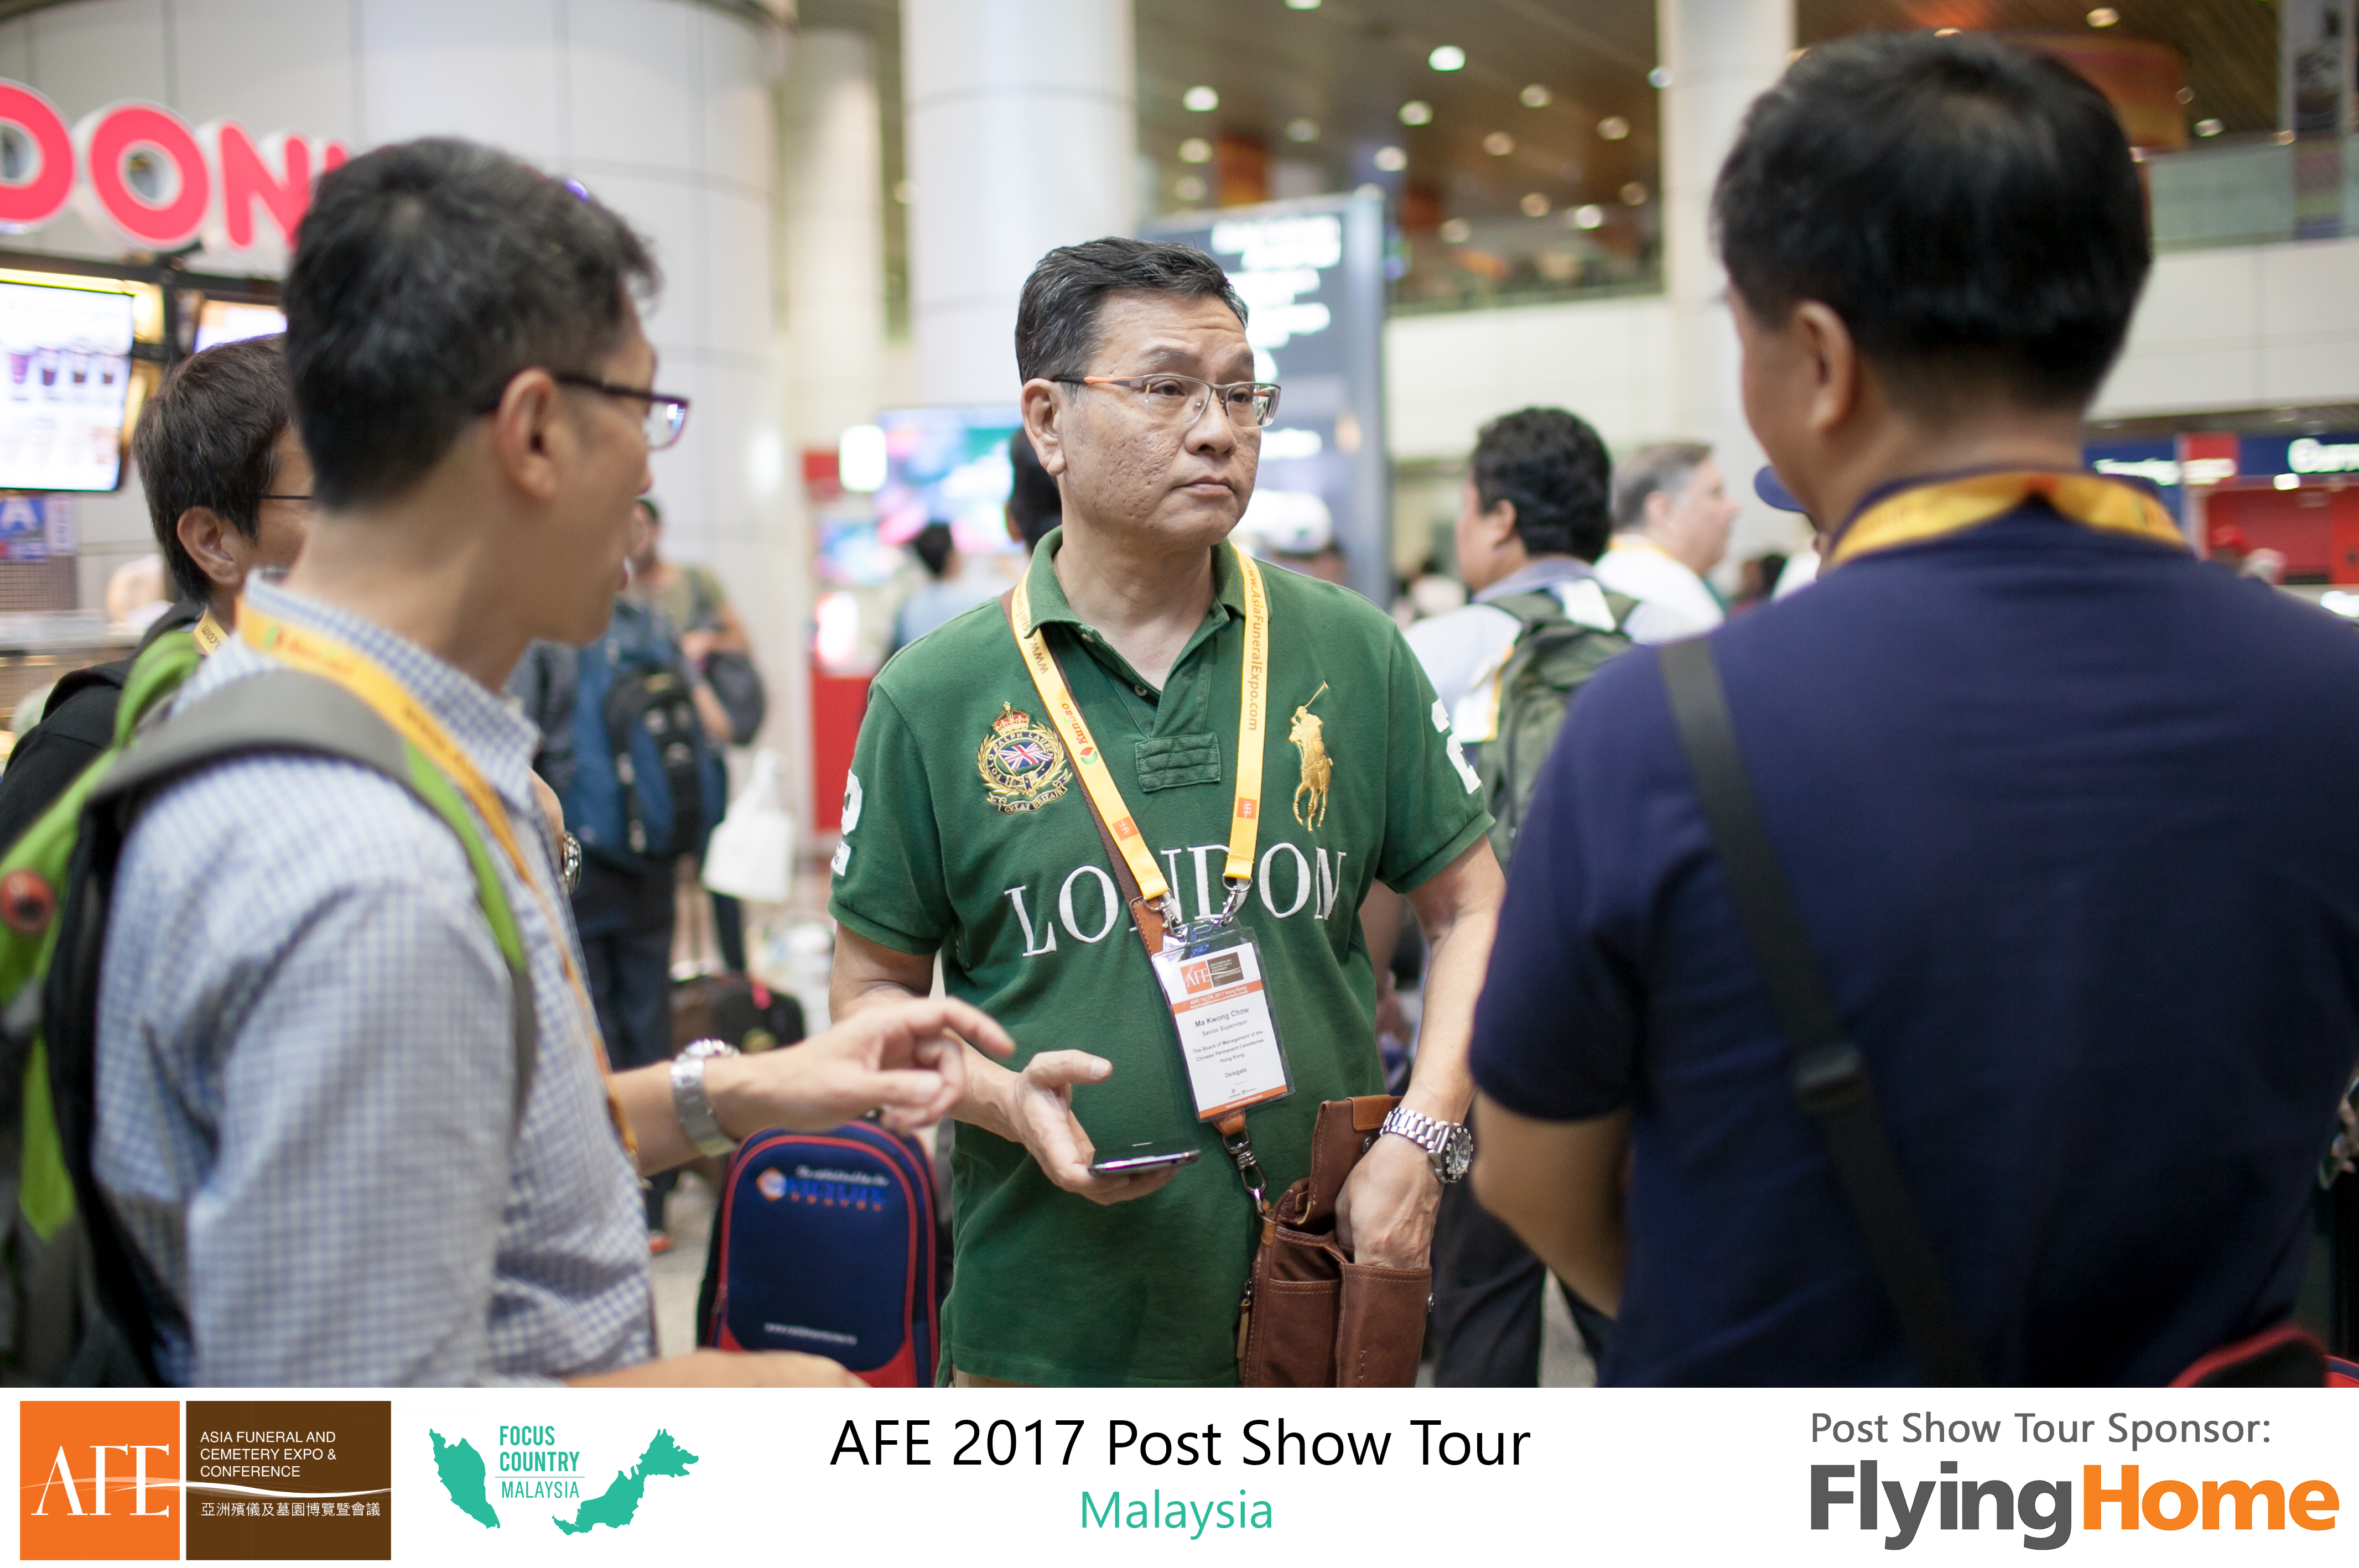 AFE Post Show Tour 2017 Day 1 - 31